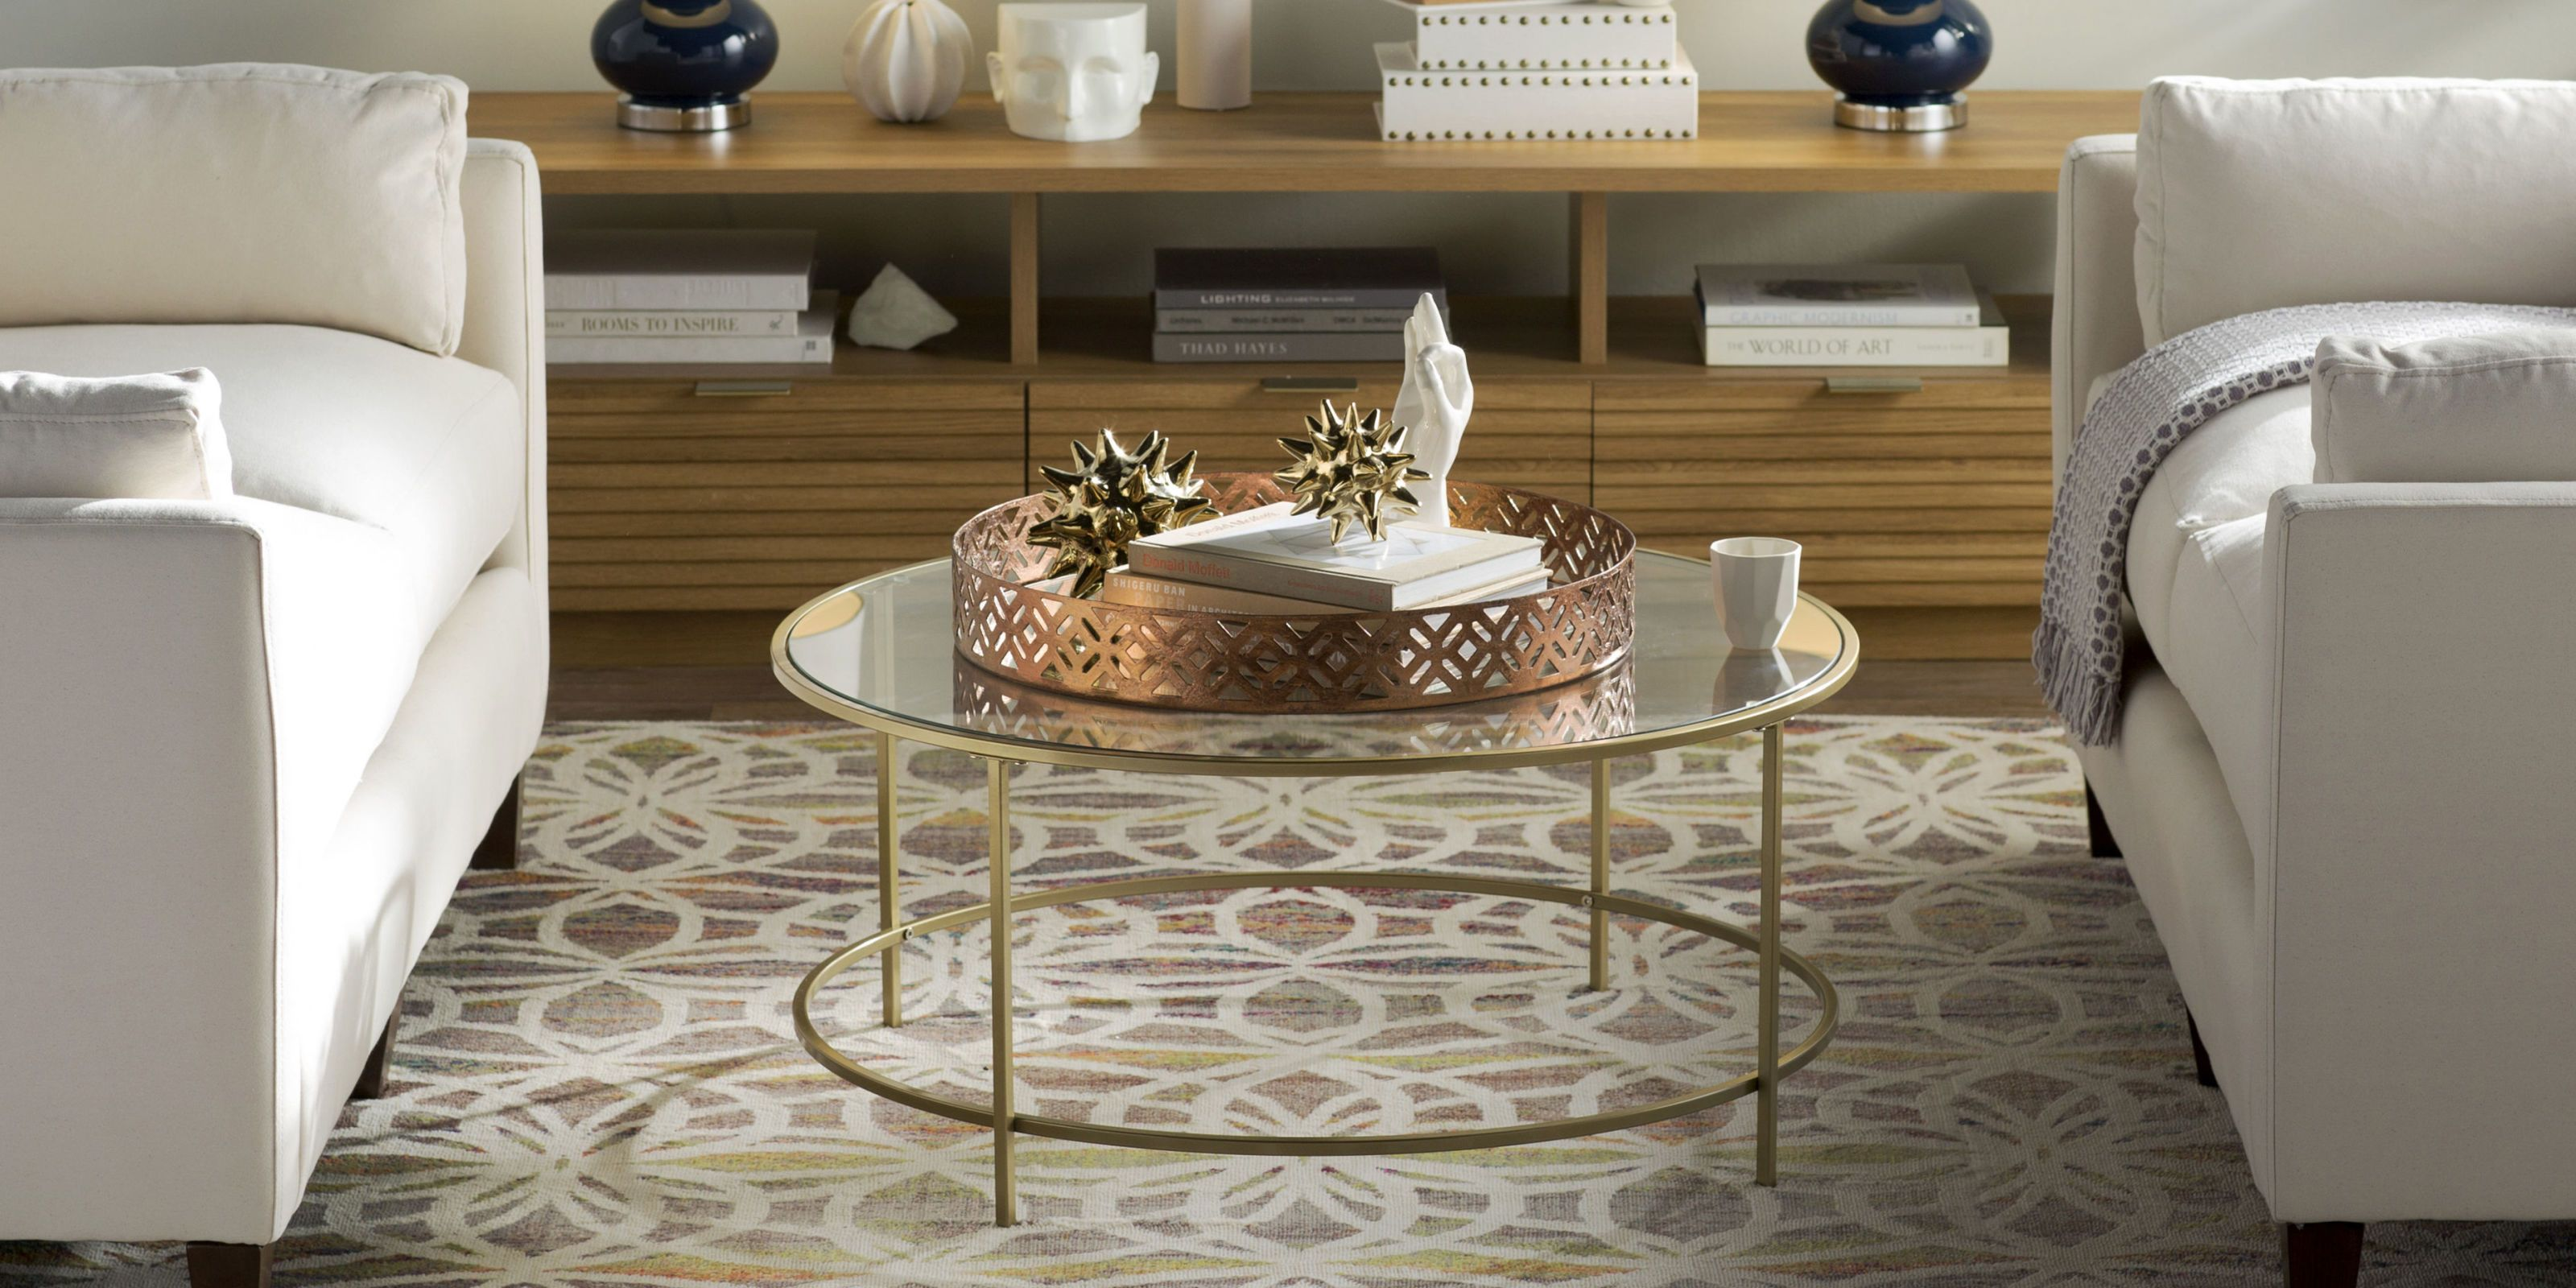 11 gorgeous glass coffee tables for an open airier room